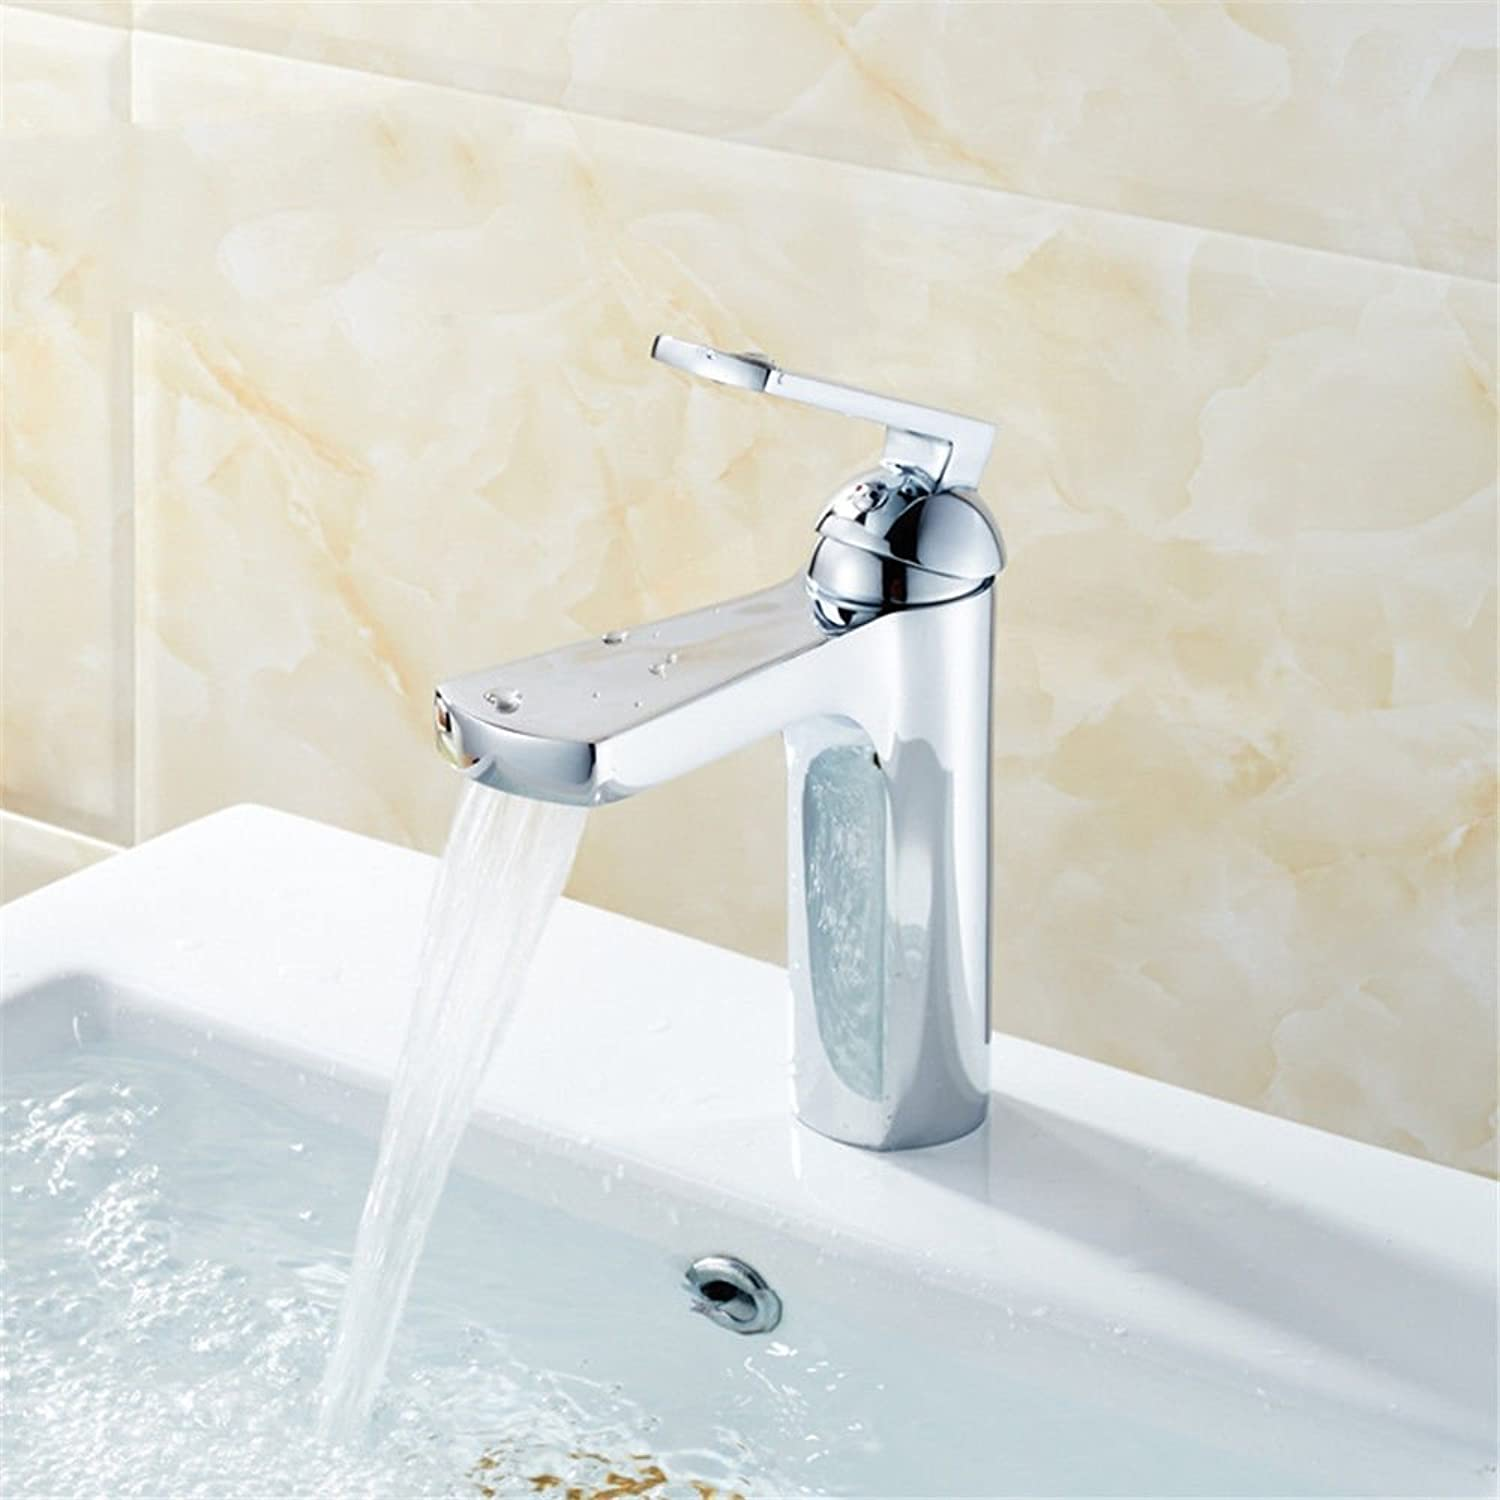 ETERNAL QUALITY Bathroom Sink Basin Tap Brass Mixer Tap Washroom Mixer Faucet Home Hotel full copper single-a-basin mixer bathroom console sink hot and cold-water faucet